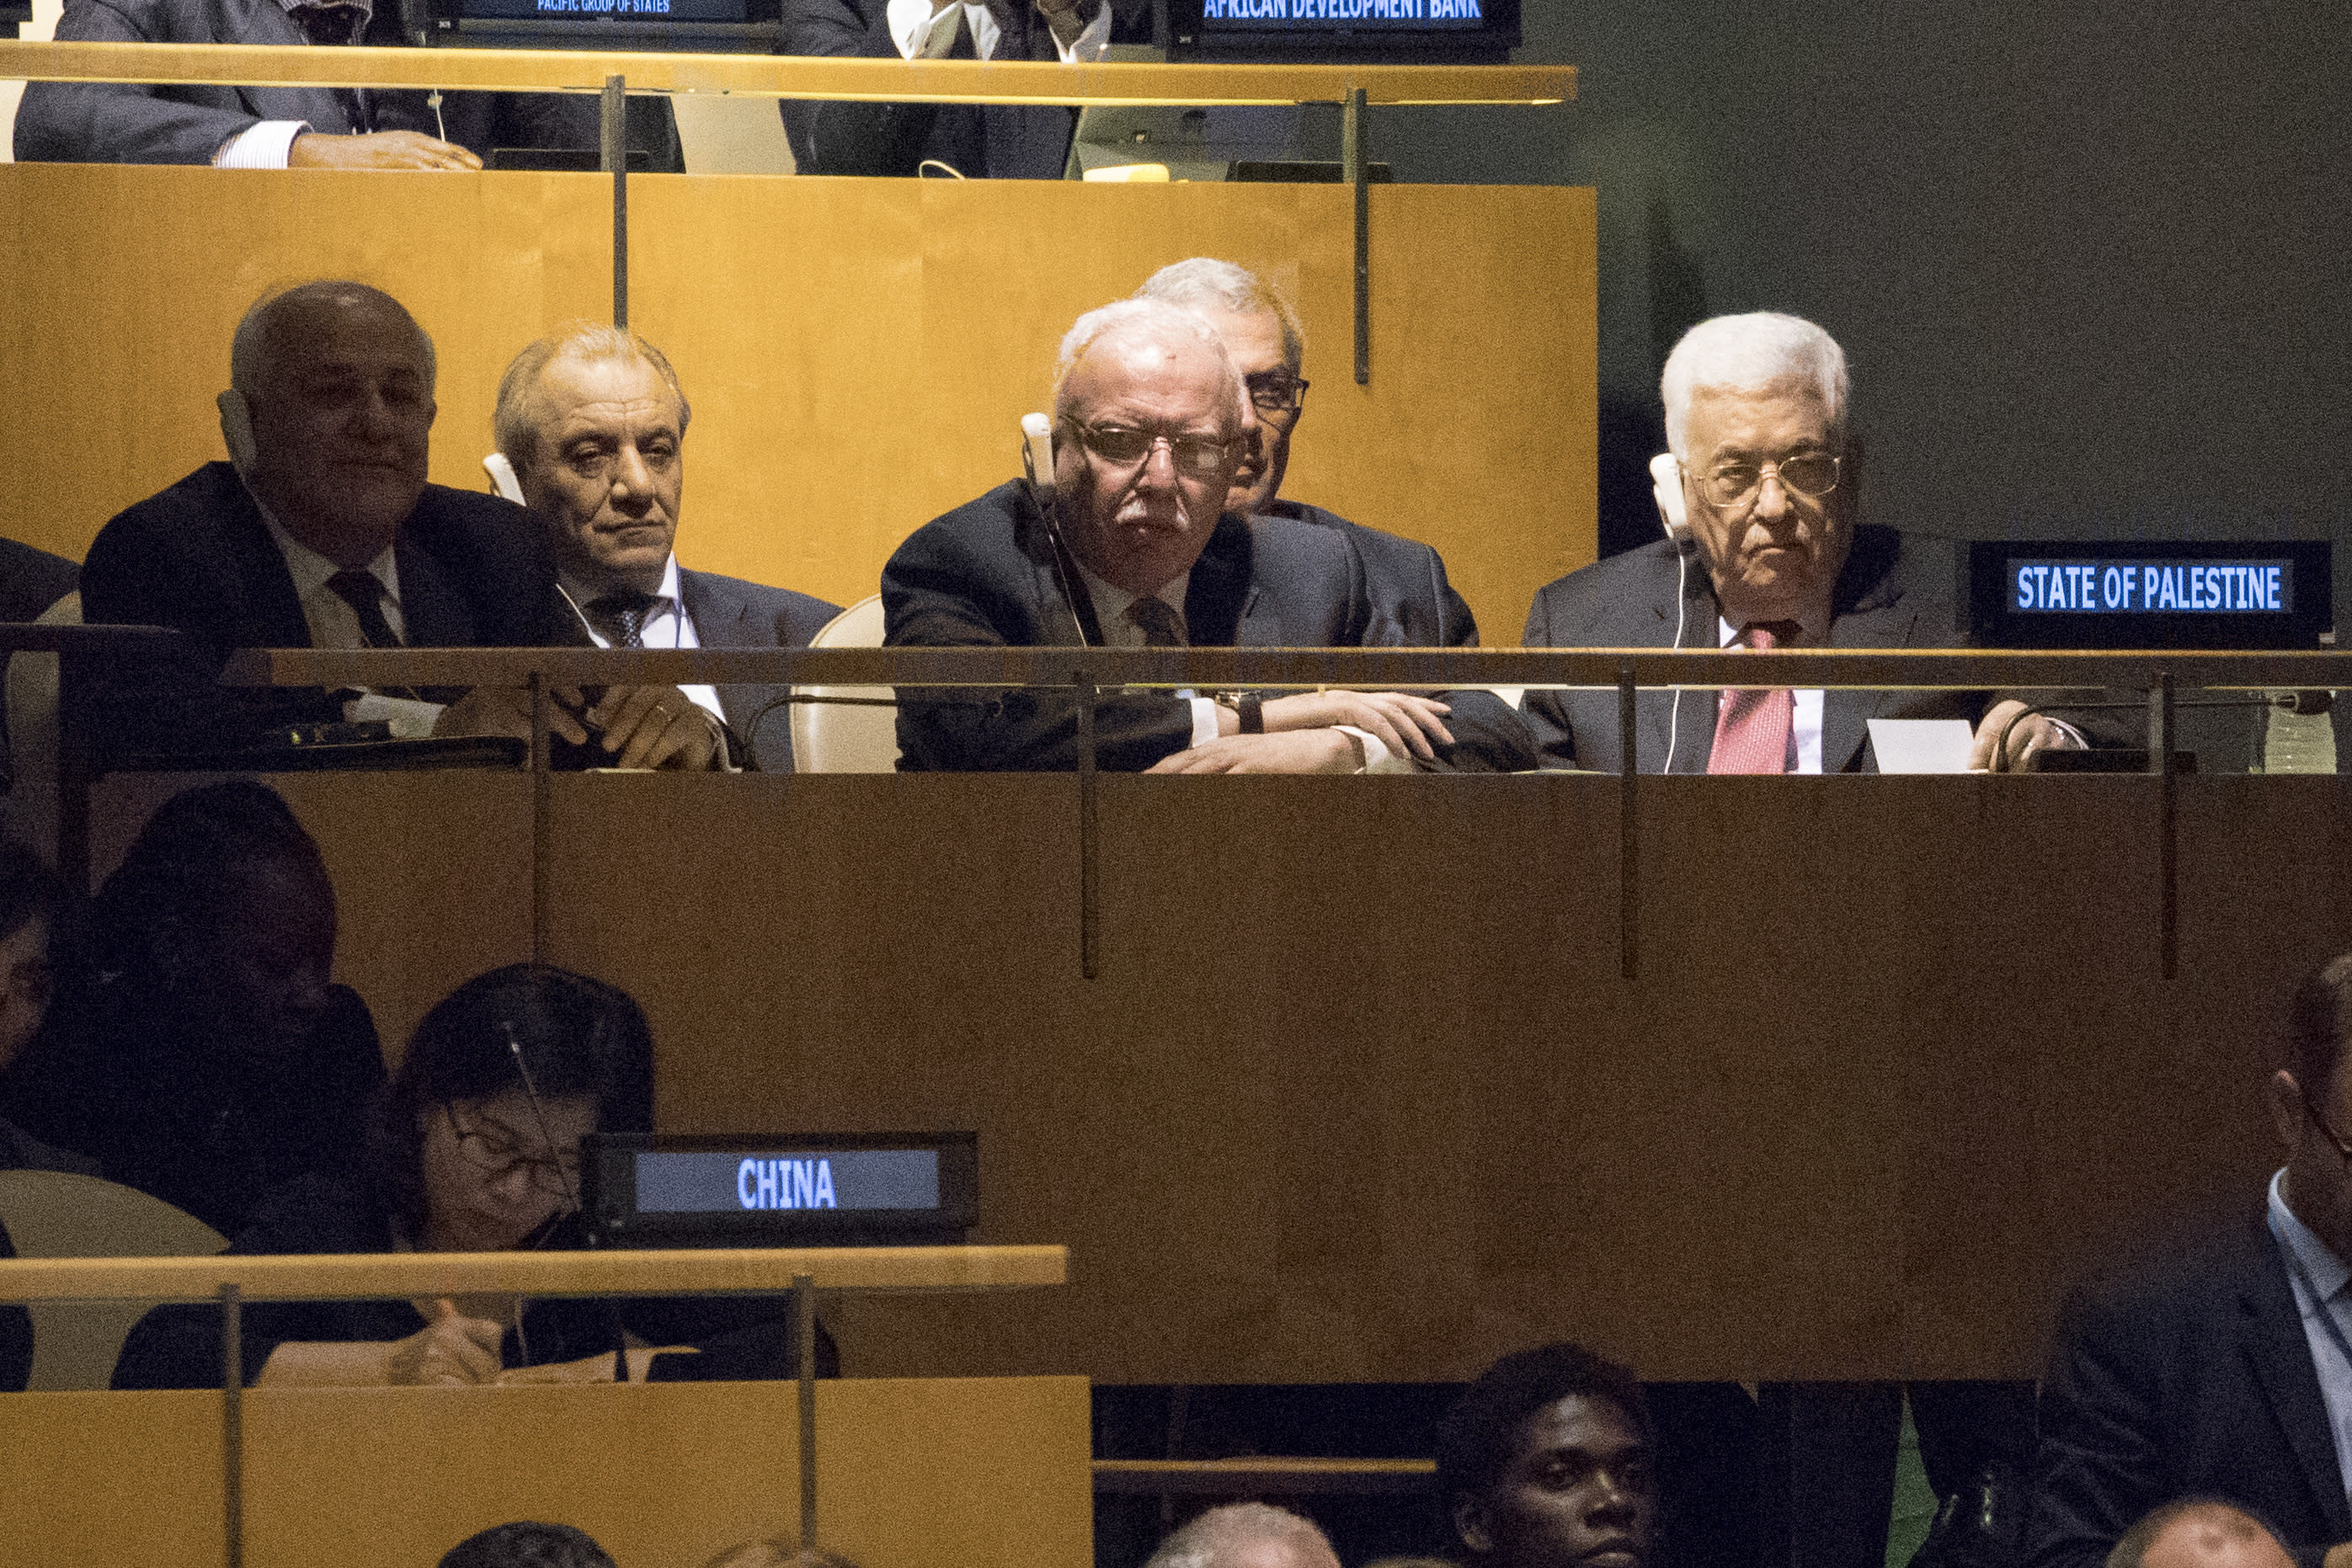 <p>Palestinian President Mahmoud Abbas, right, listens as President Trump speaks during the 72nd session of the United Nations General Assembly at U.N. headquarters, Tuesday, Sept. 19, 2017. (Photo: Mary Altaffer/AP) </p>